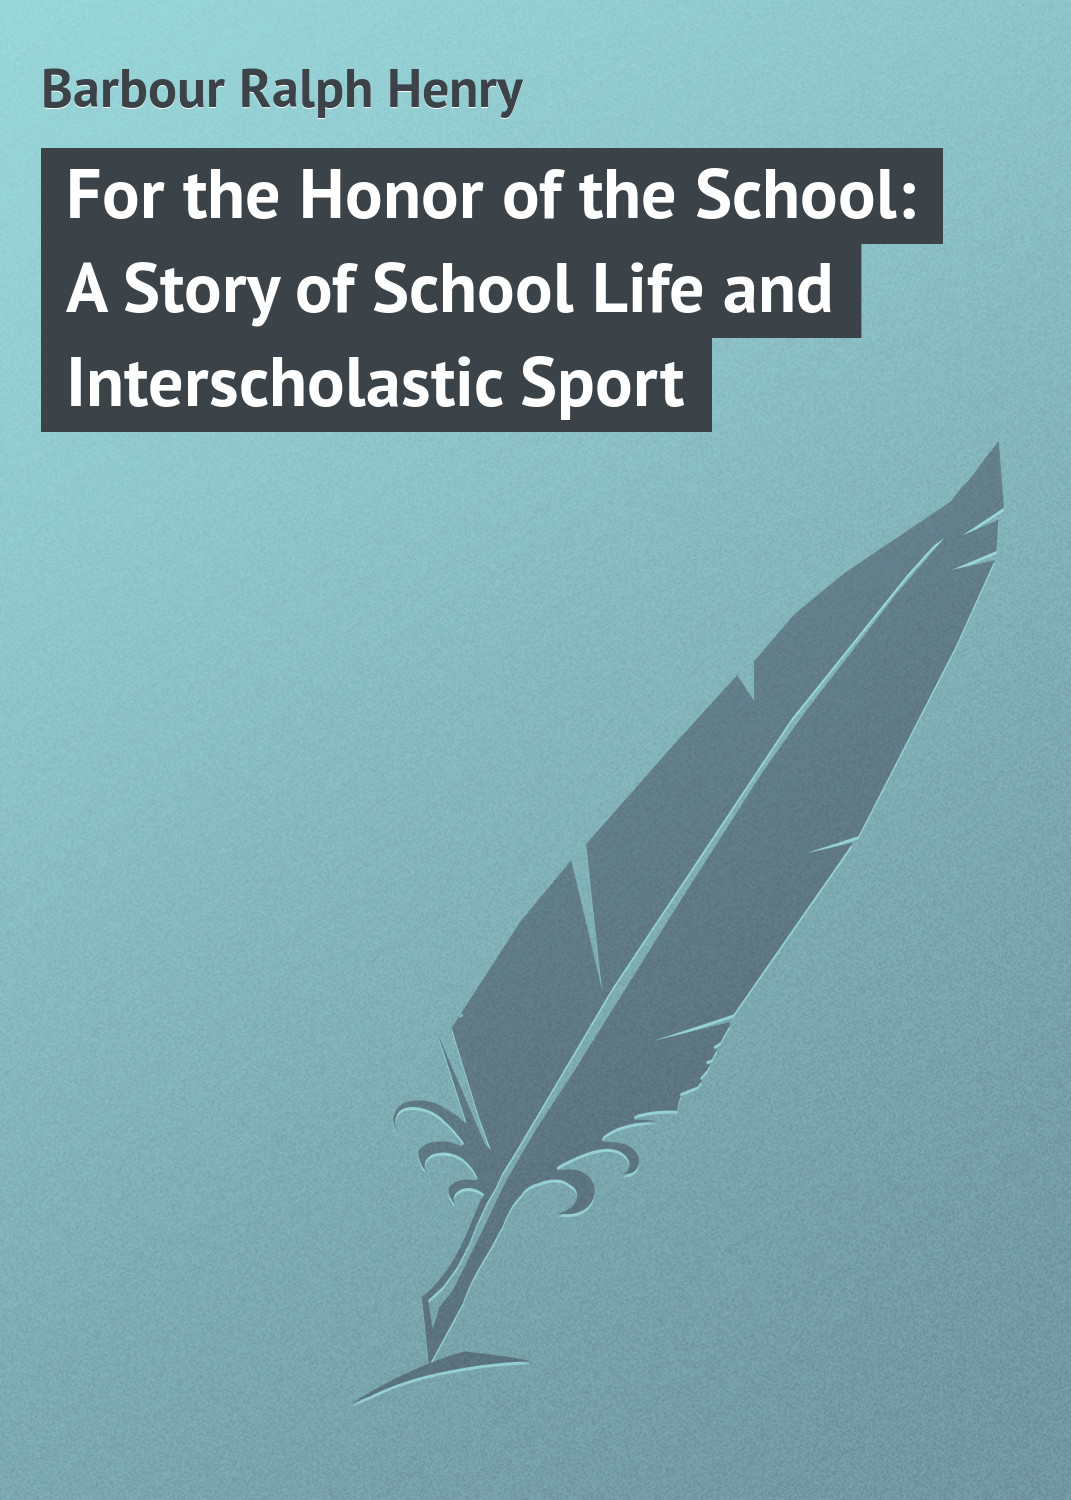 Barbour Ralph Henry For the Honor of the School: A Story of School Life and Interscholastic Sport